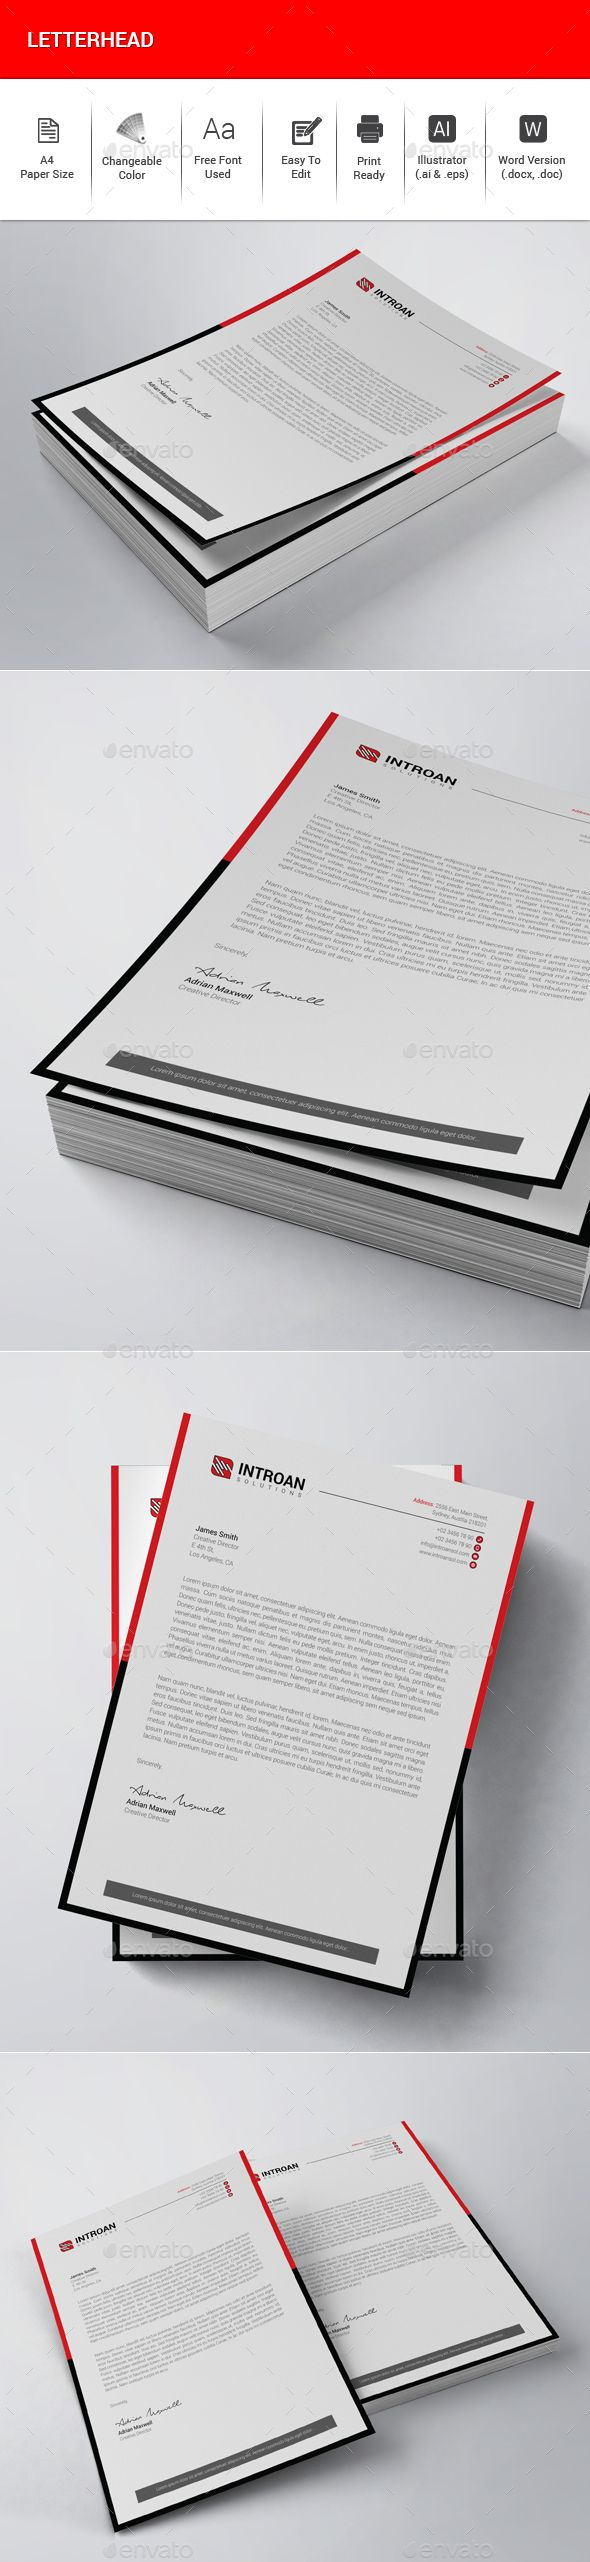 The 25 best letterhead template ideas on pinterest letterhead letterhead stationery print templates download here https graphicriver spiritdancerdesigns Choice Image